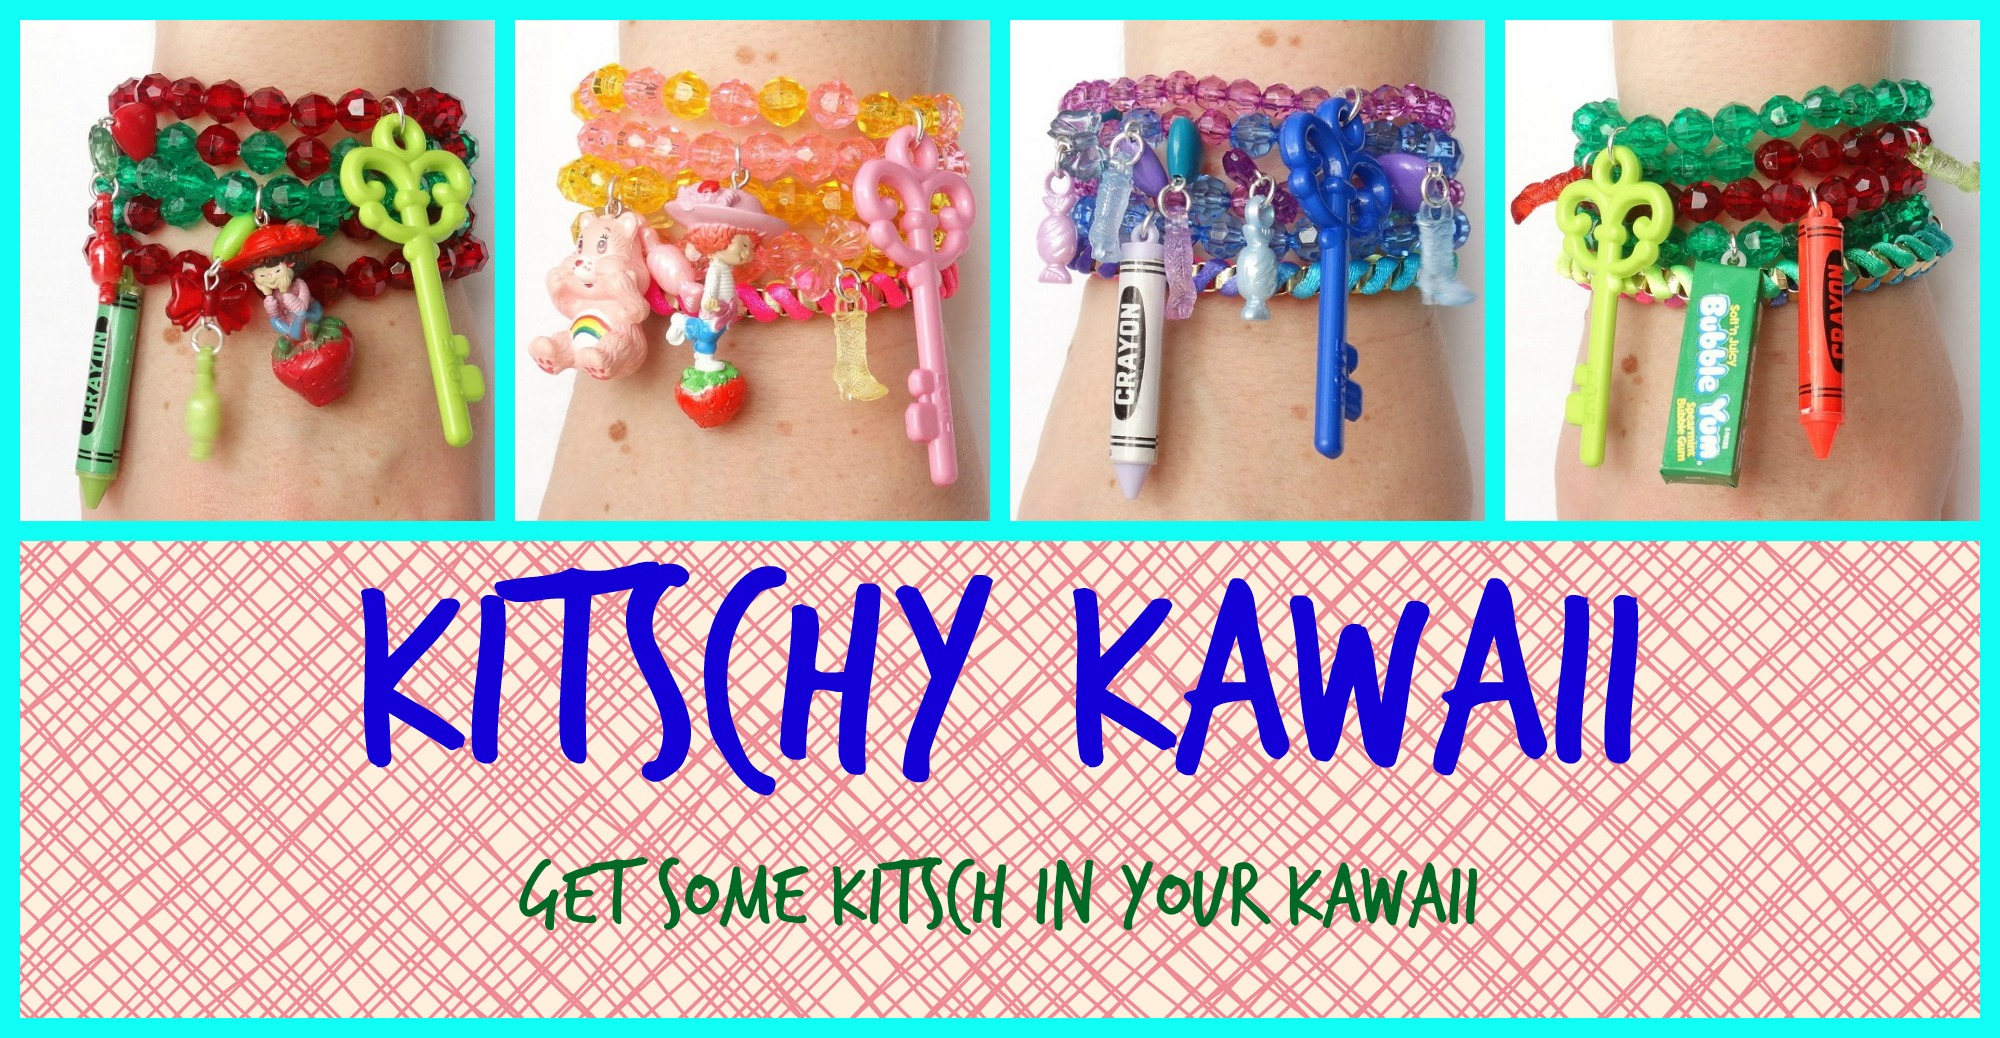 WANT IT WEDNESDAY: KITSCHY KAWAII, The NEW Collection